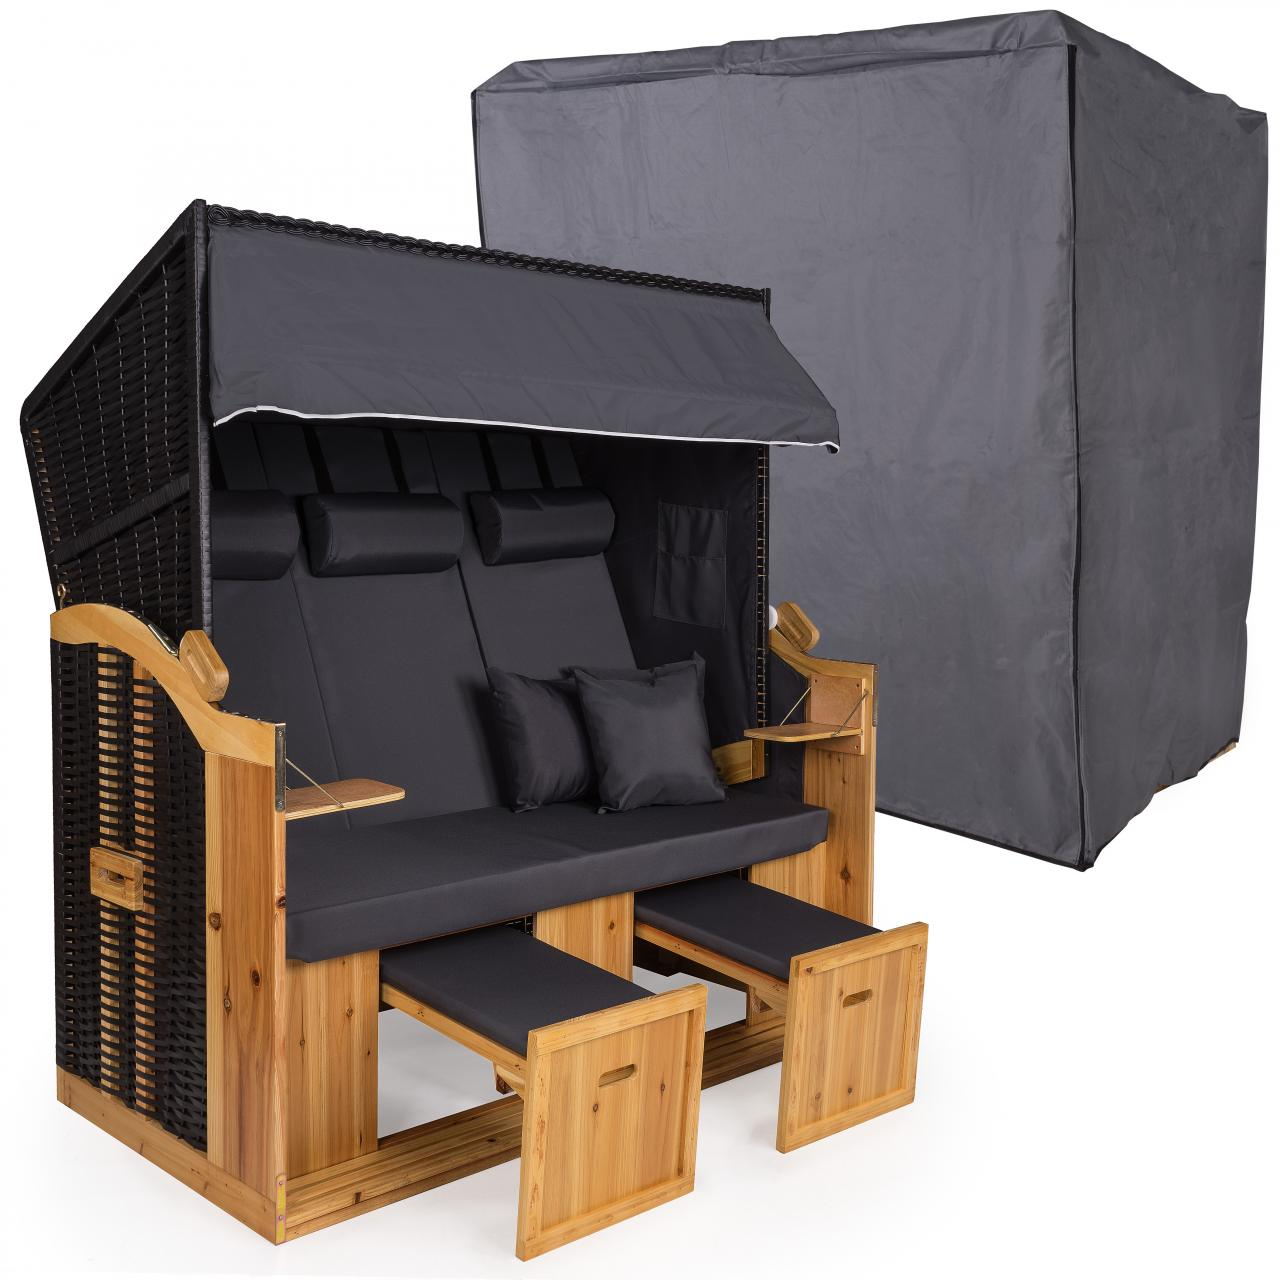 strandkorb xxl 160cm inklusive schutzh lle 600d volllieger ostsee gartenm bel ebay. Black Bedroom Furniture Sets. Home Design Ideas